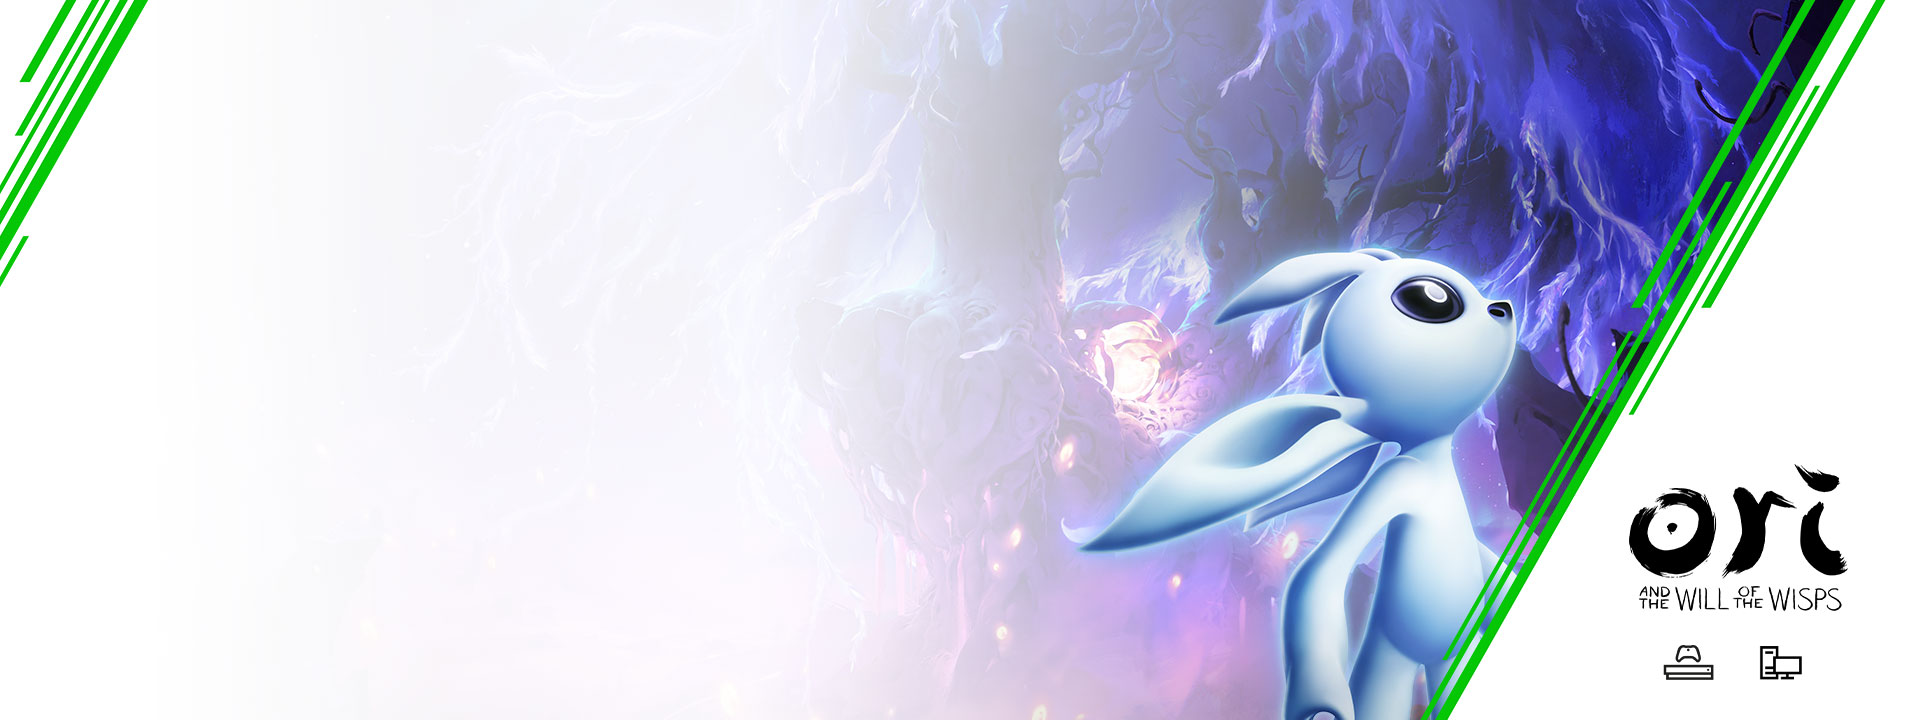 Ori z gry Ori and the Will of the Wisps z drzewem w tle. Logo Xbox Game Pass, Xbox One i PC.